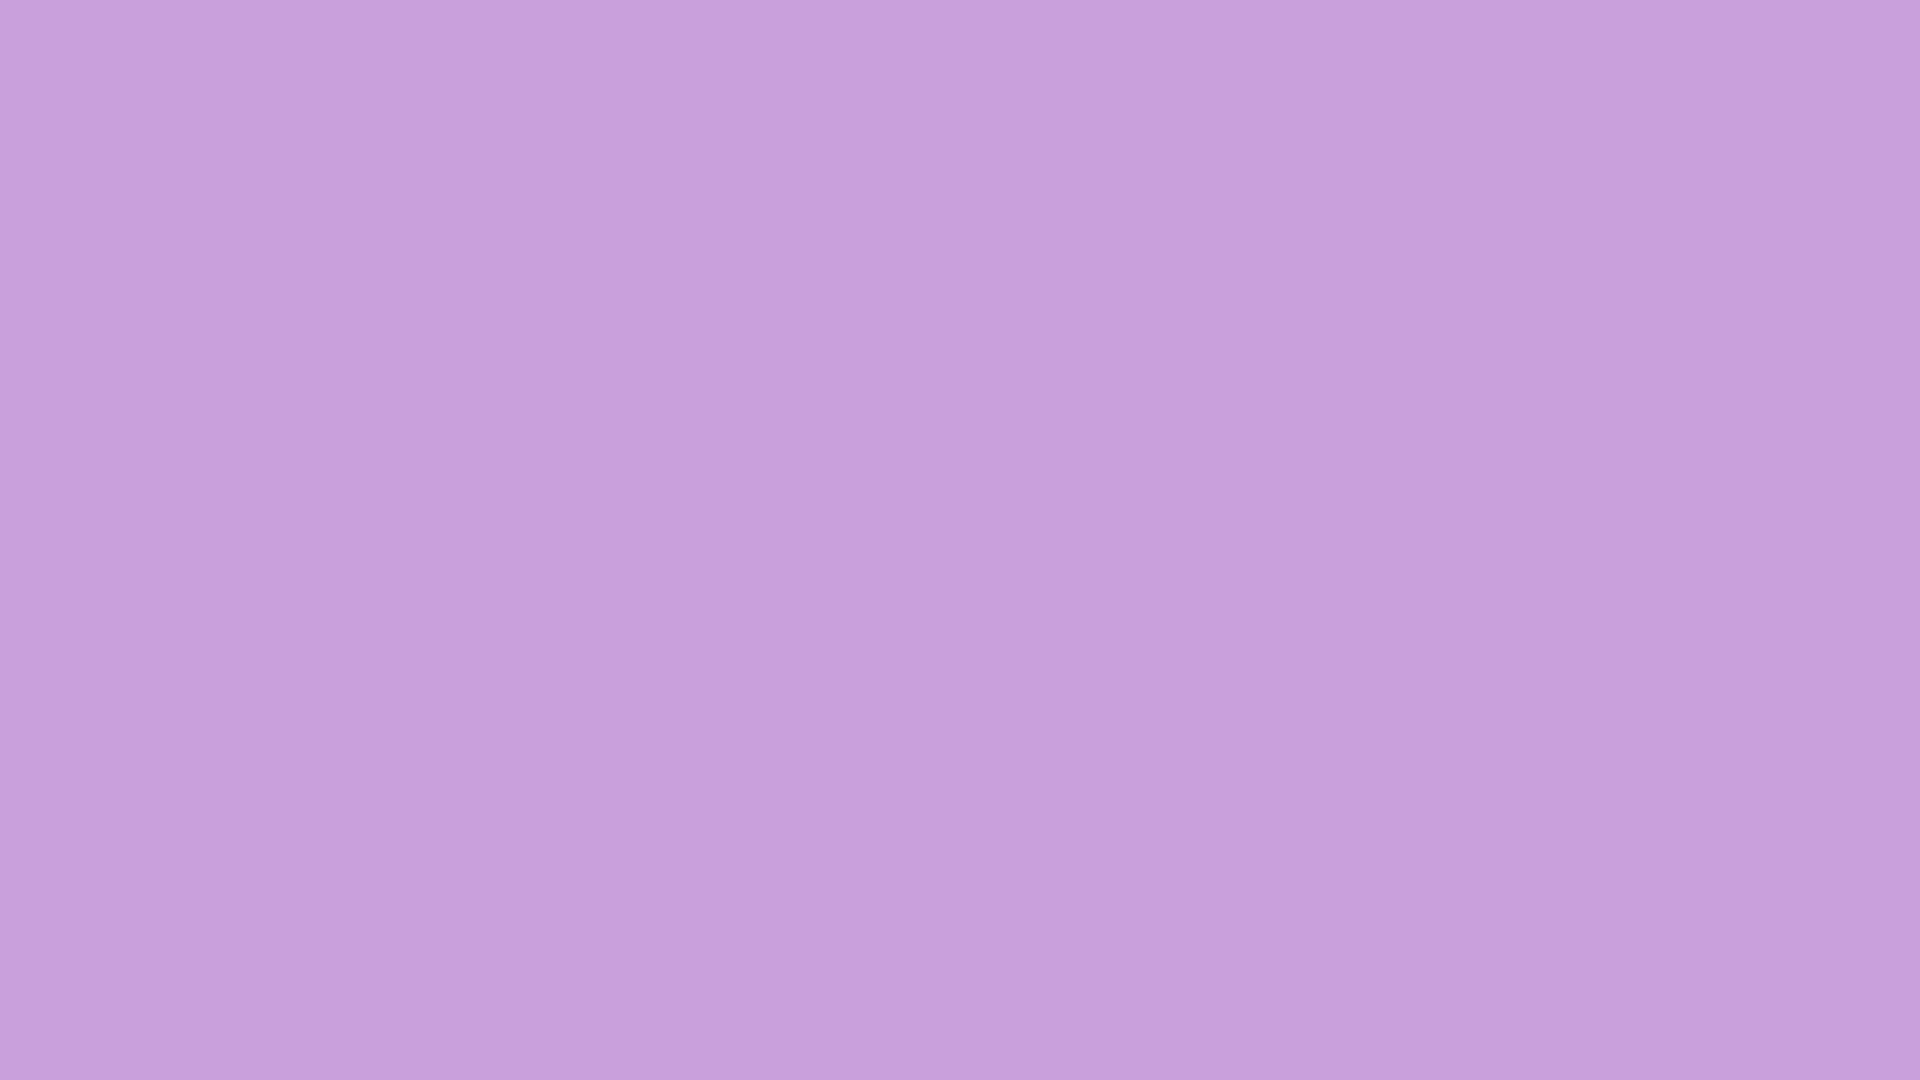 1920x1080 Wisteria Solid Color Background